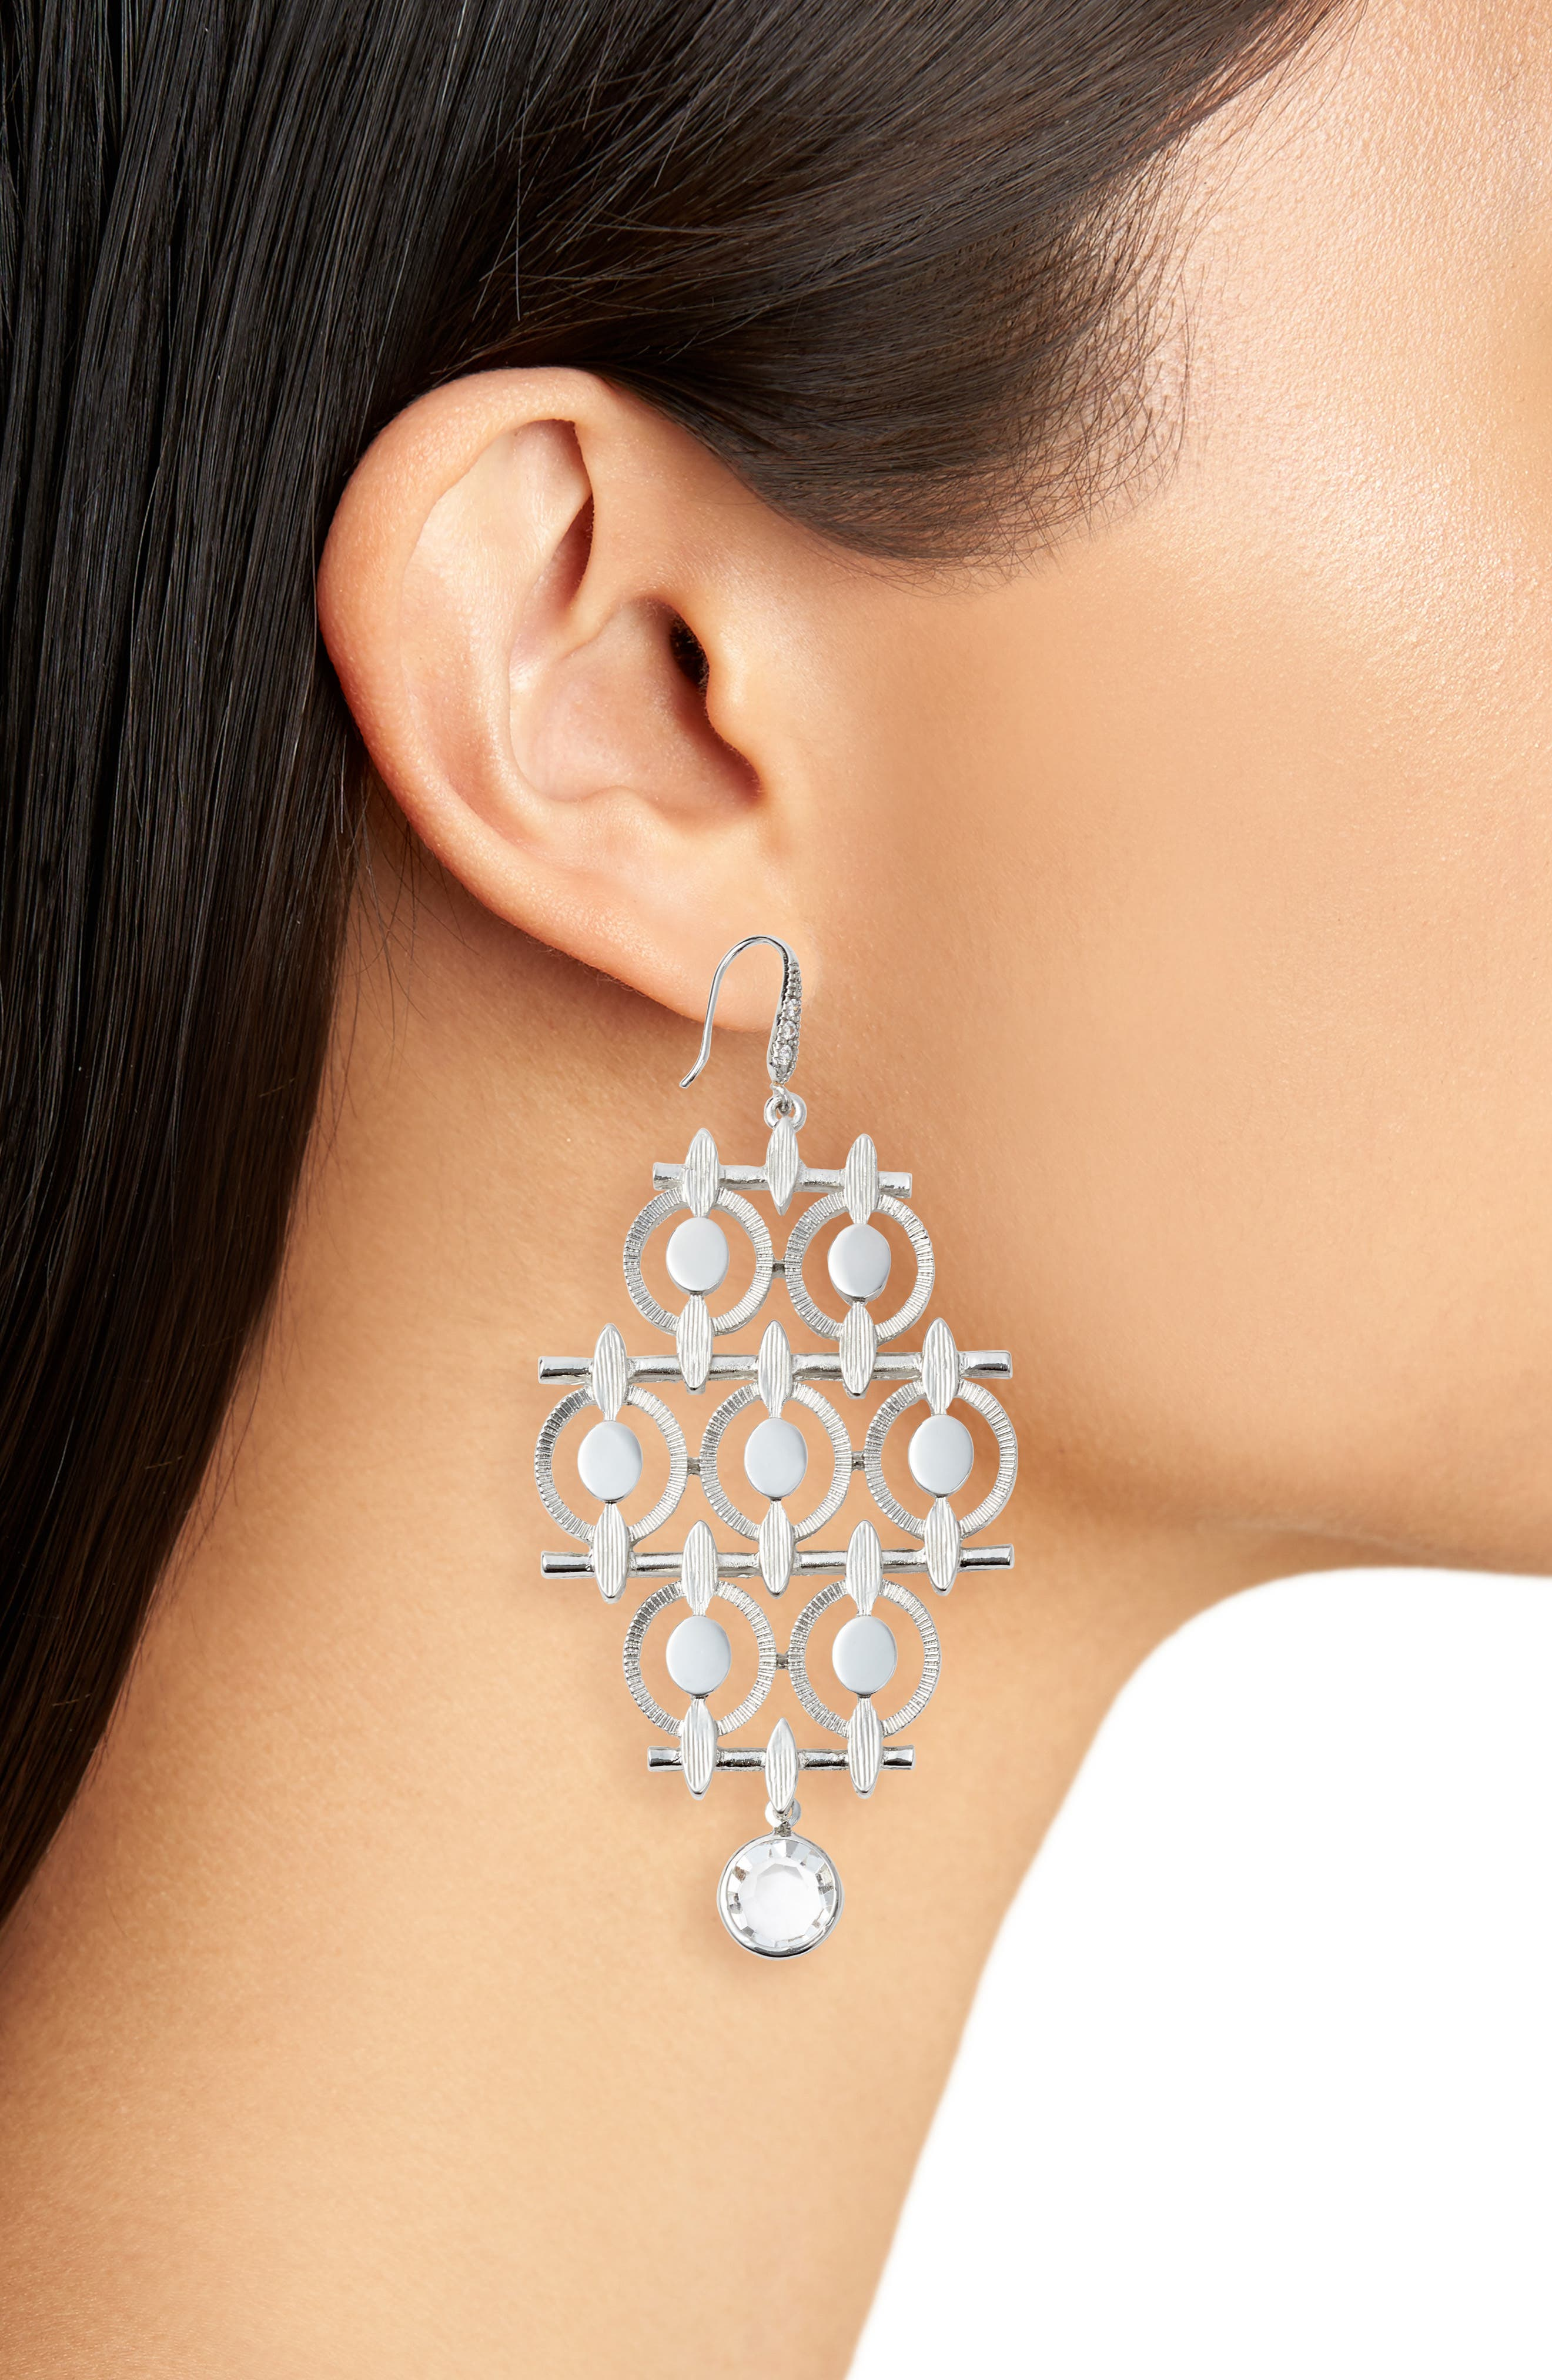 Chandelier Drop Earrings,                             Alternate thumbnail 2, color,                             Silver